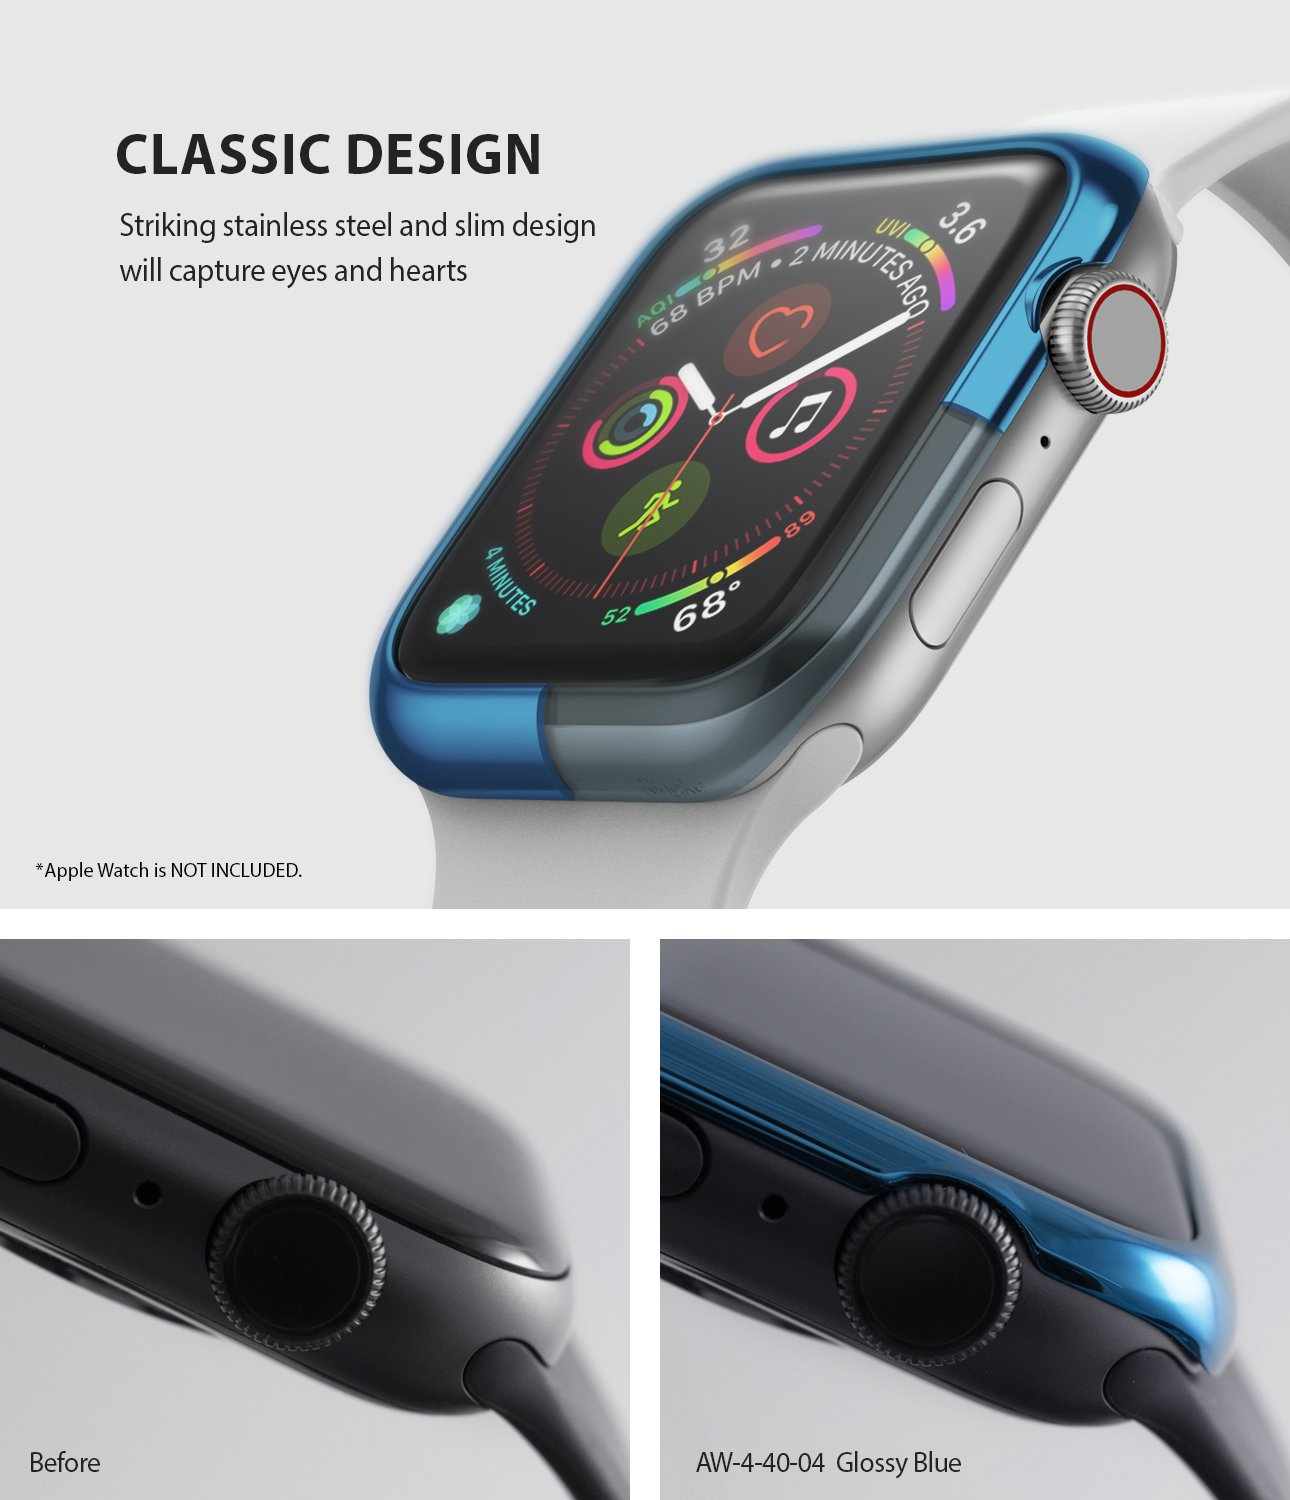 ringke bezel styling 40-04 glossy blue stainless steel on apple watch series 6 / 5 / 4 / SE 40mm classic design